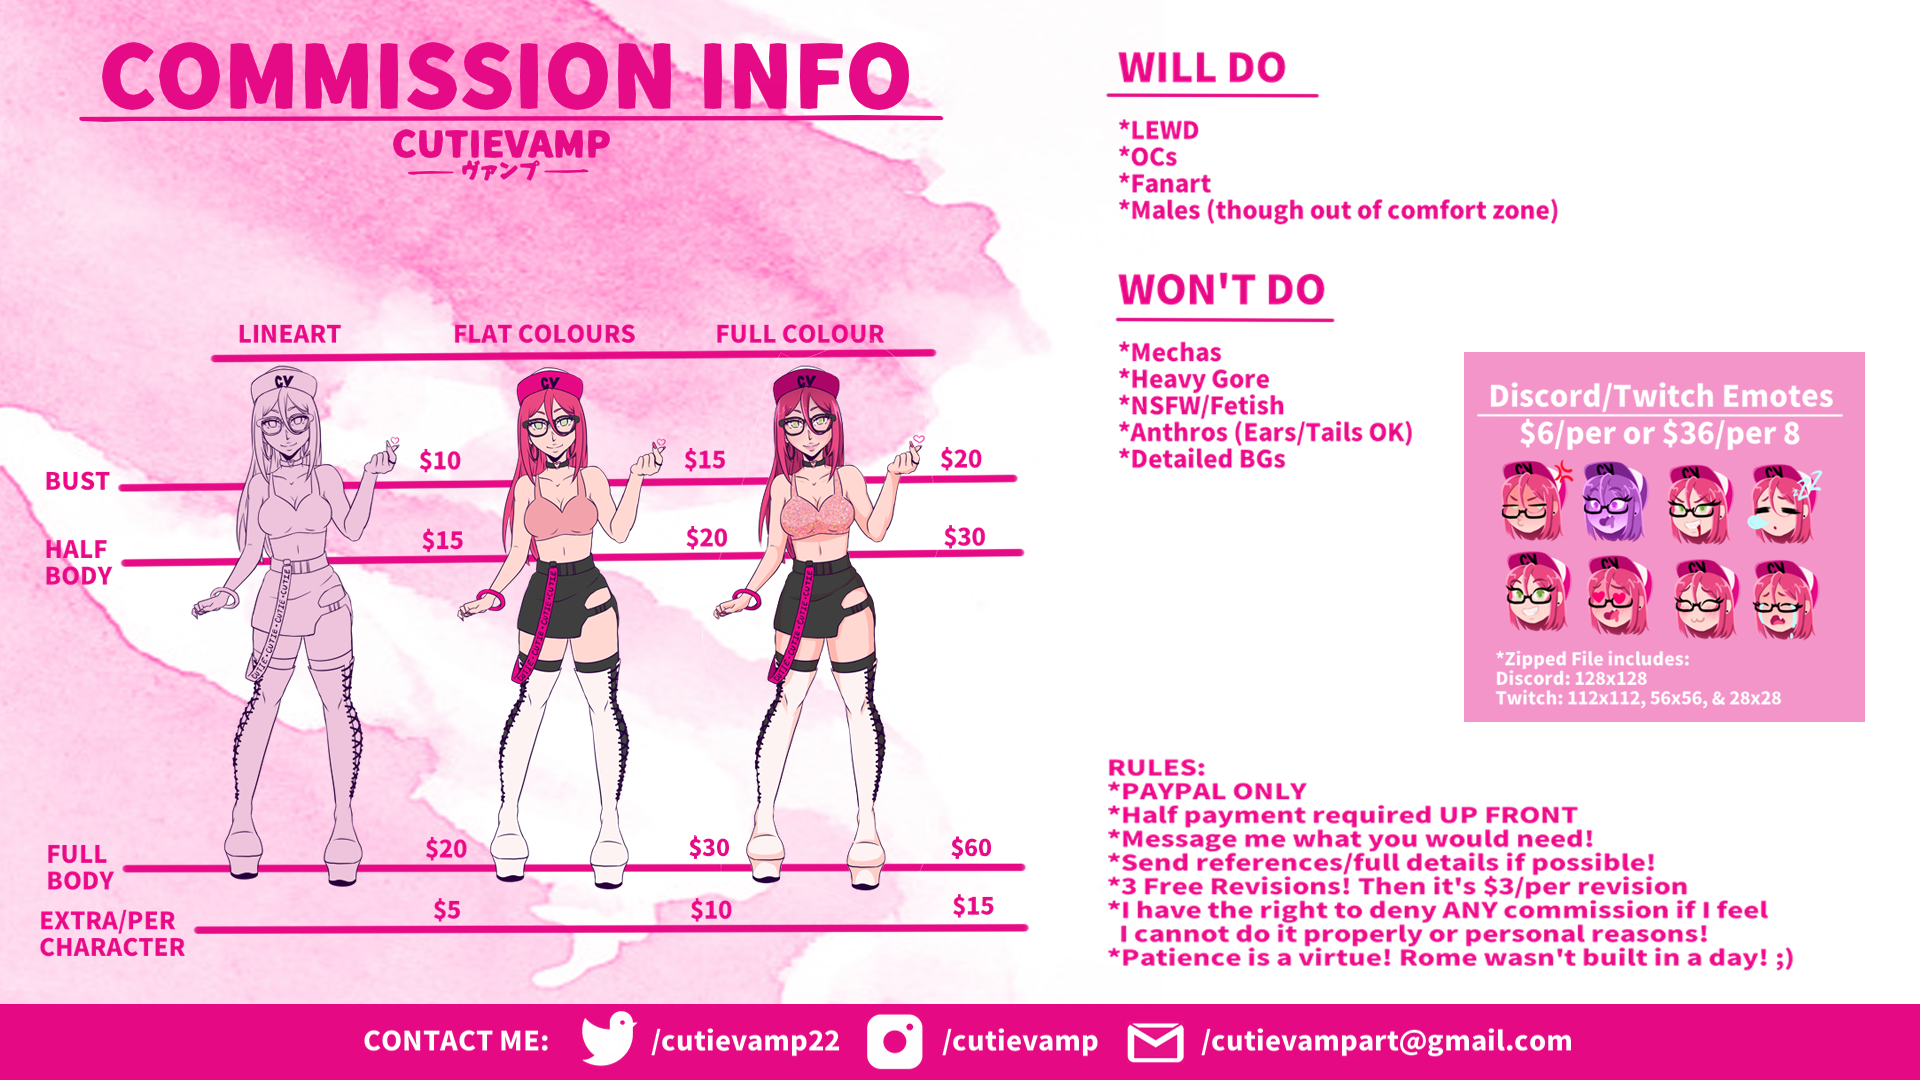 Commission Info Sheet: CLOSED